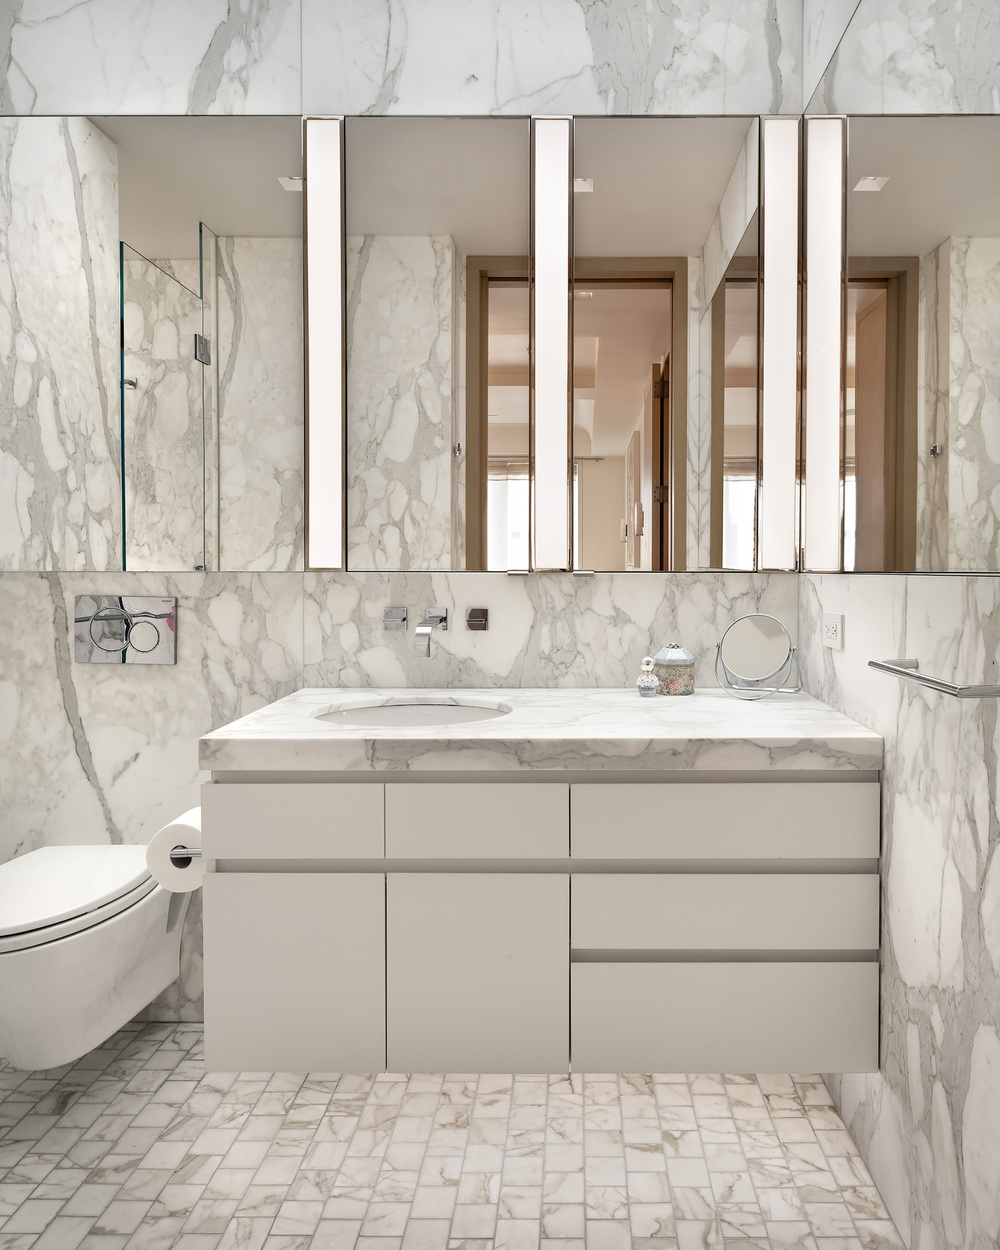 DuBois 5th Ave Residence Master Bath.jpg